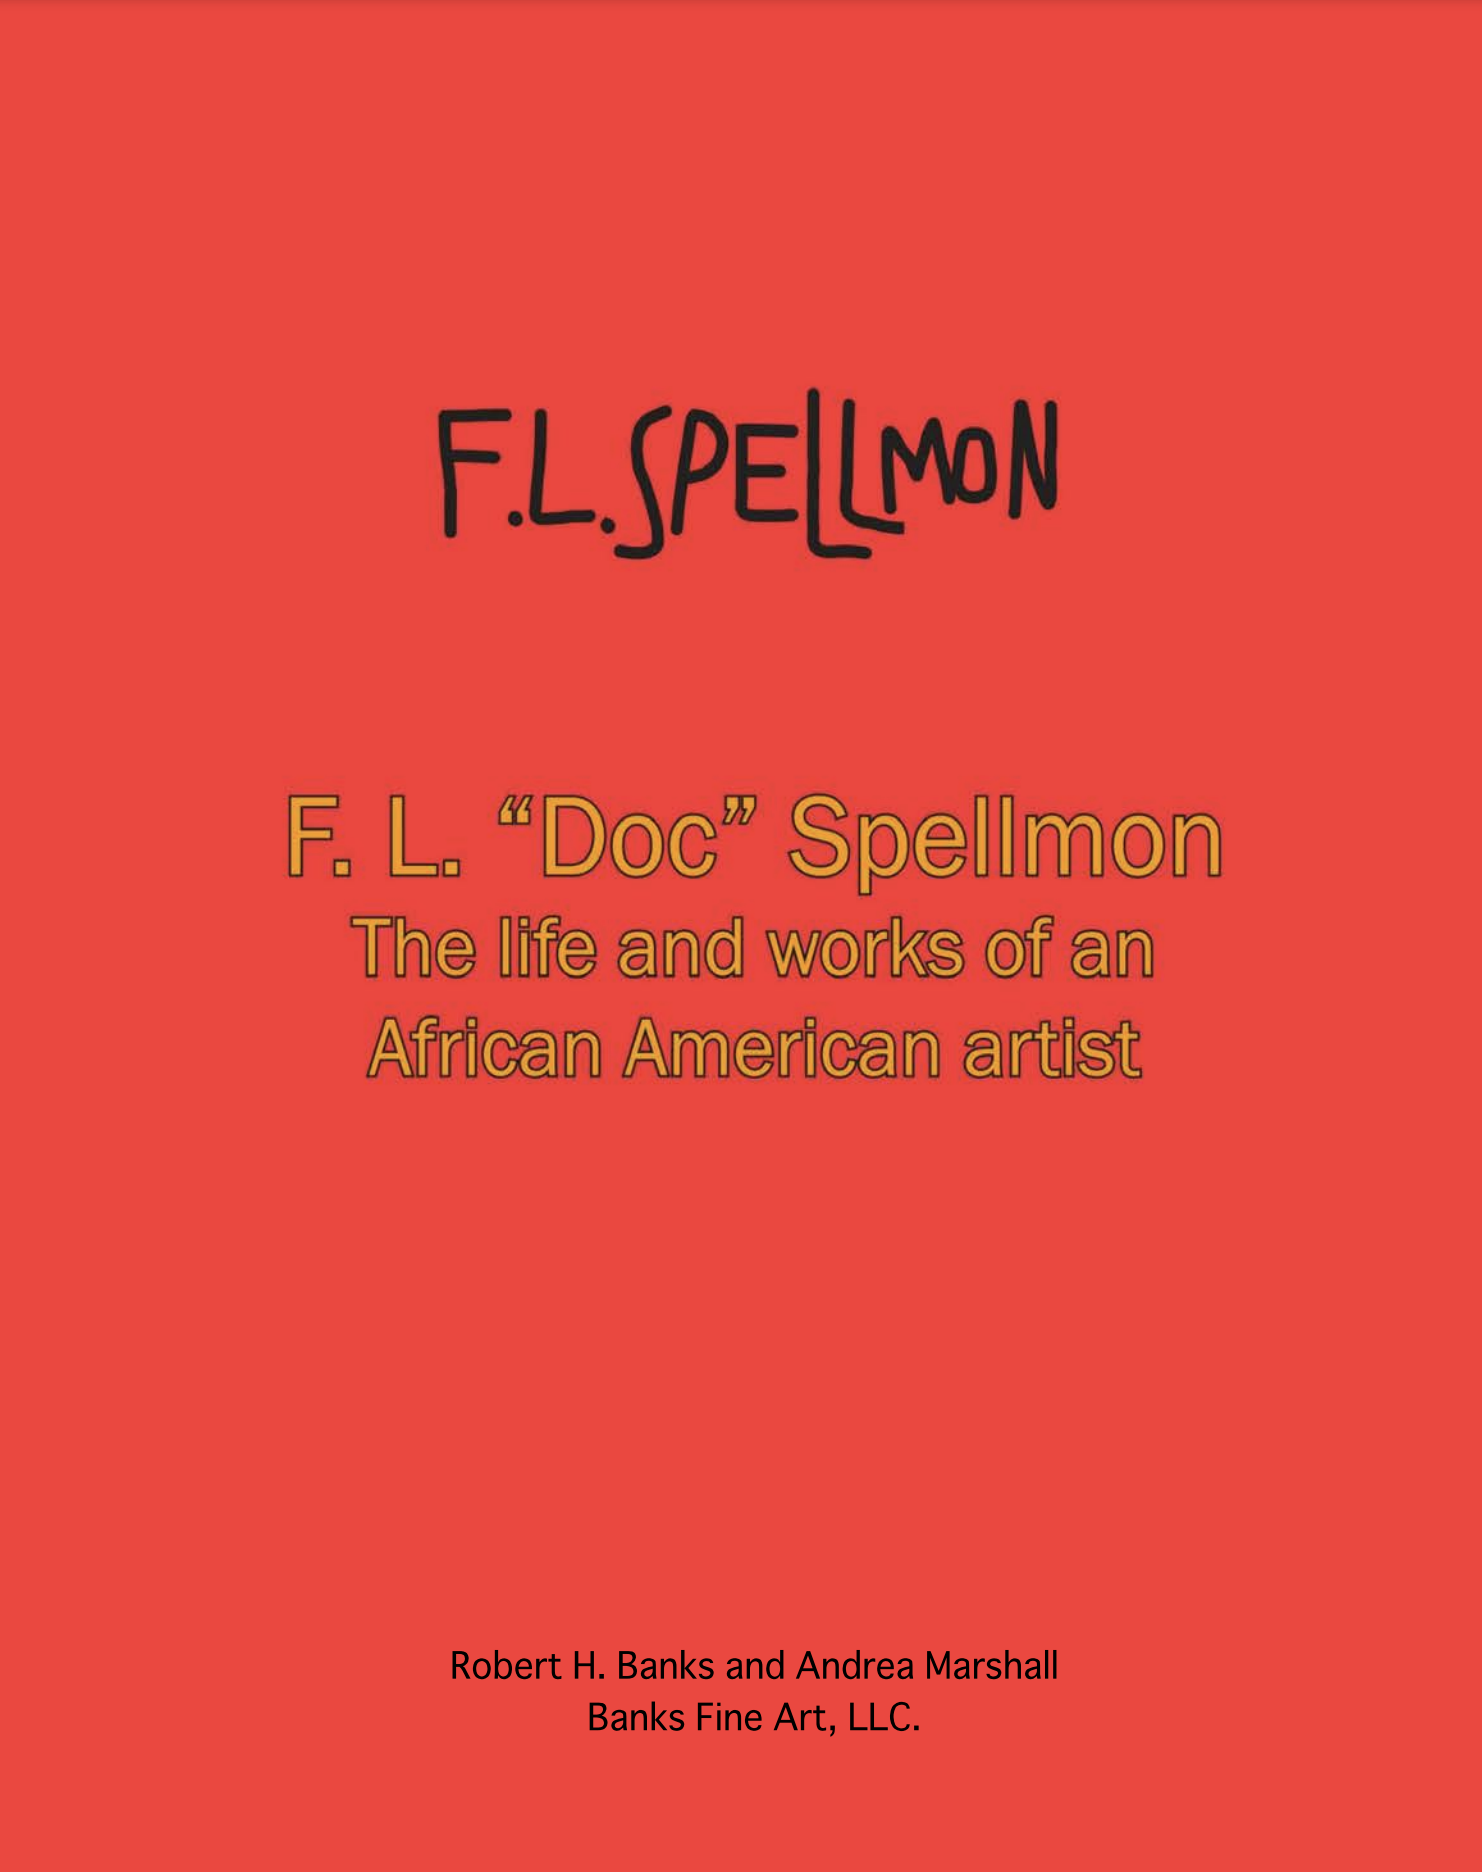 """F.L. """"Doc"""" Spellmon, The life and works of an African American artist"""